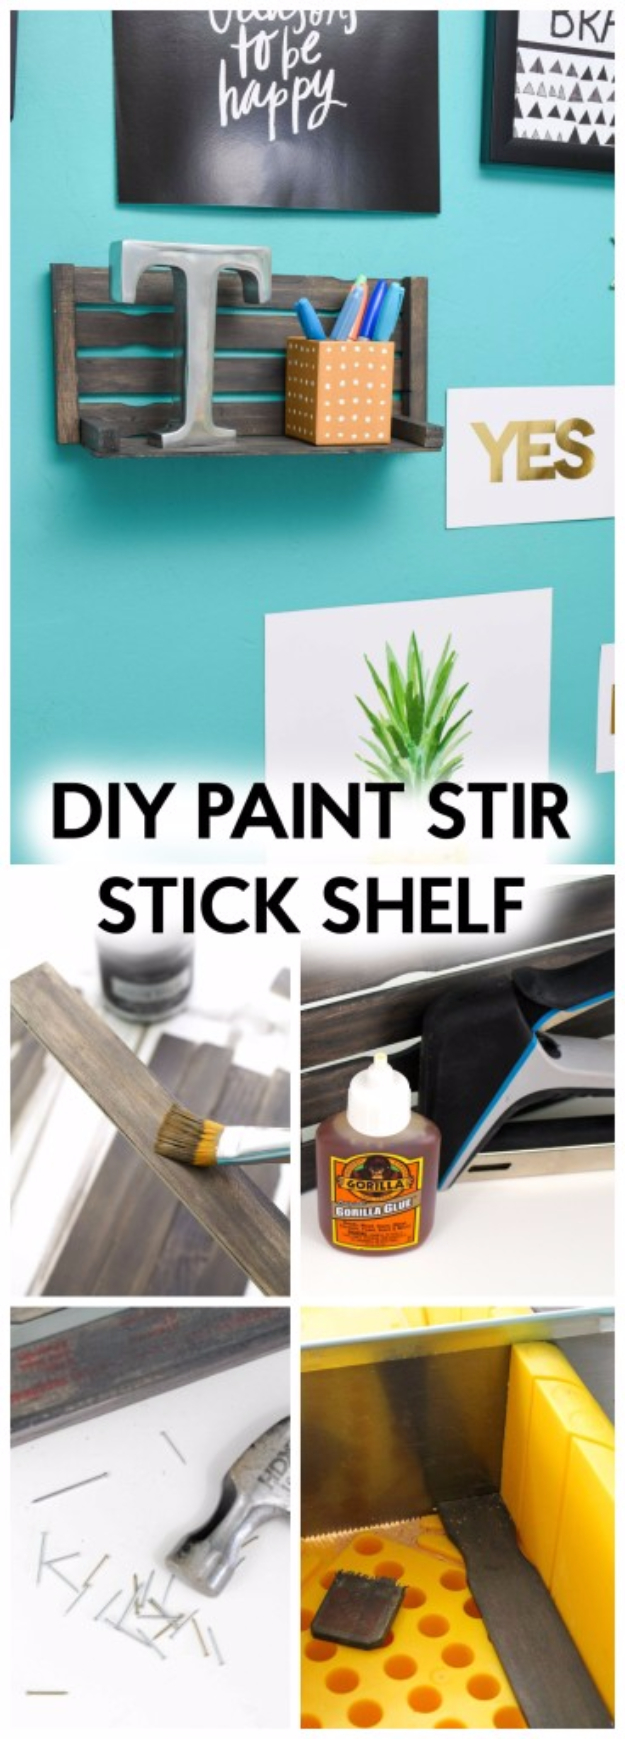 31 Crazy Cool Diy Paint Stick Projects